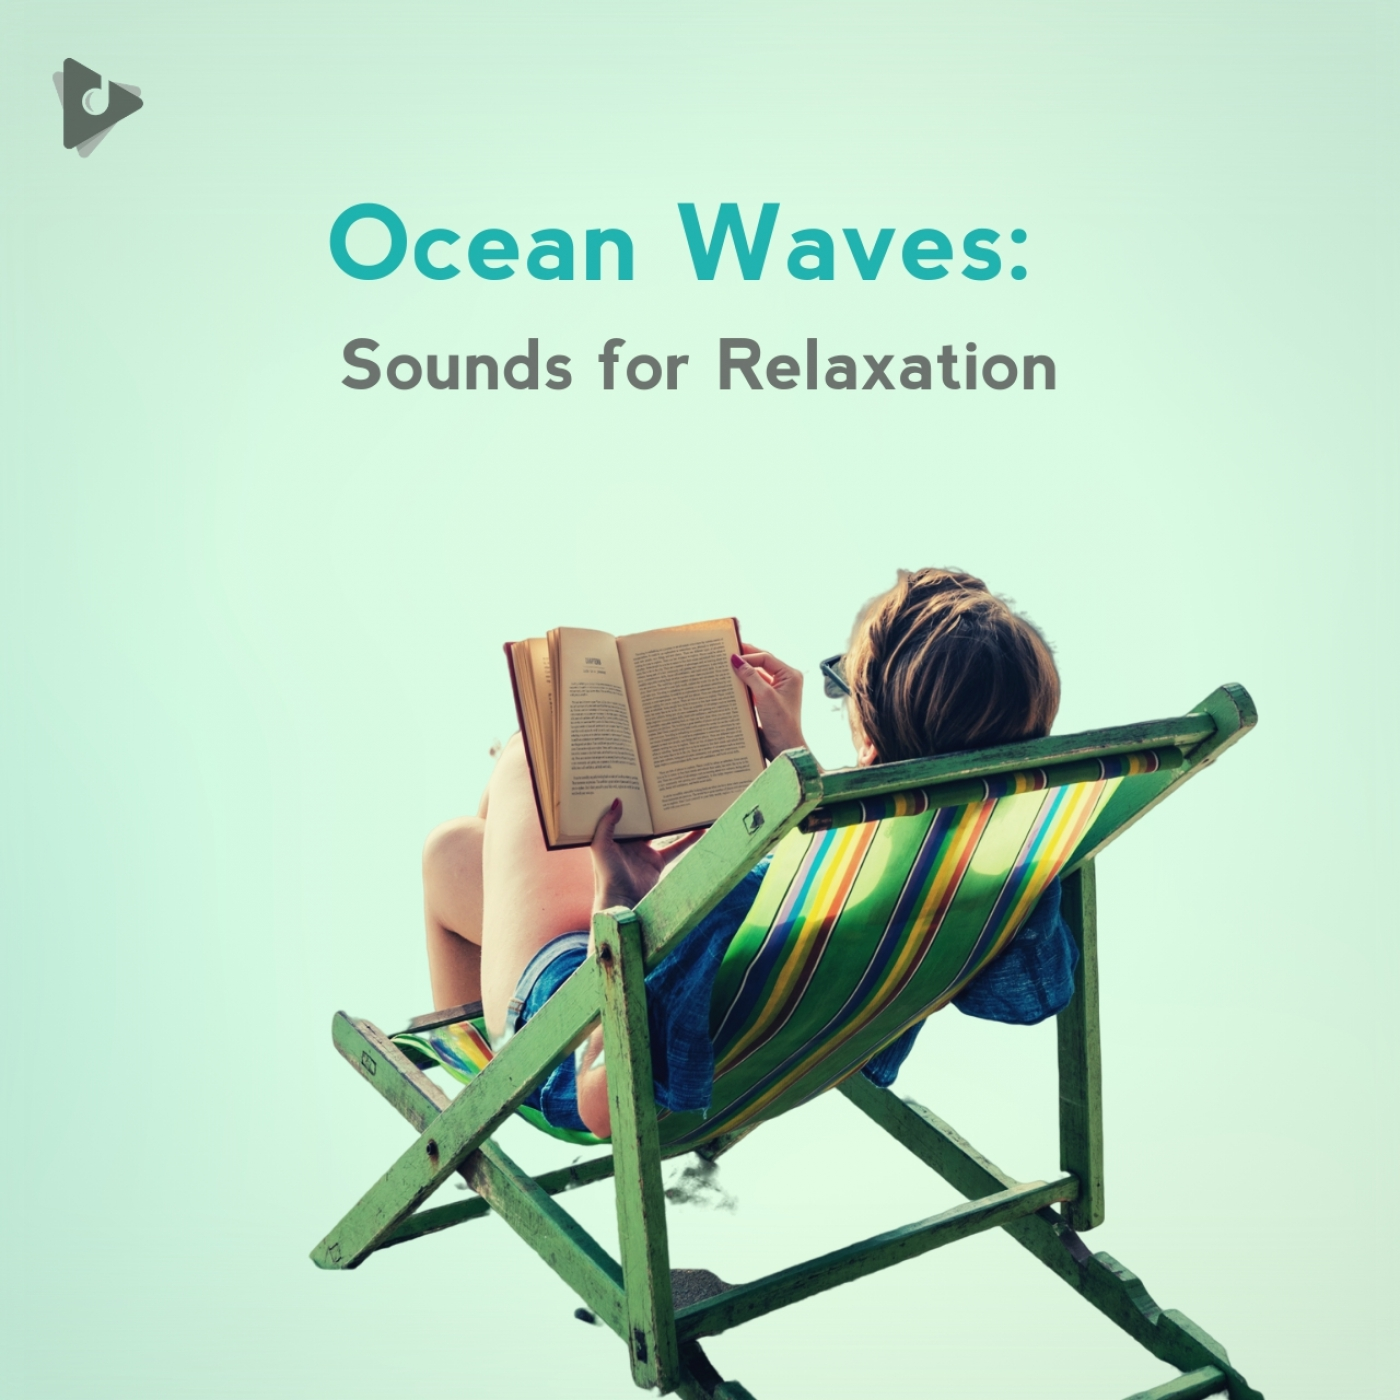 Ocean Waves: Sounds for Relaxation